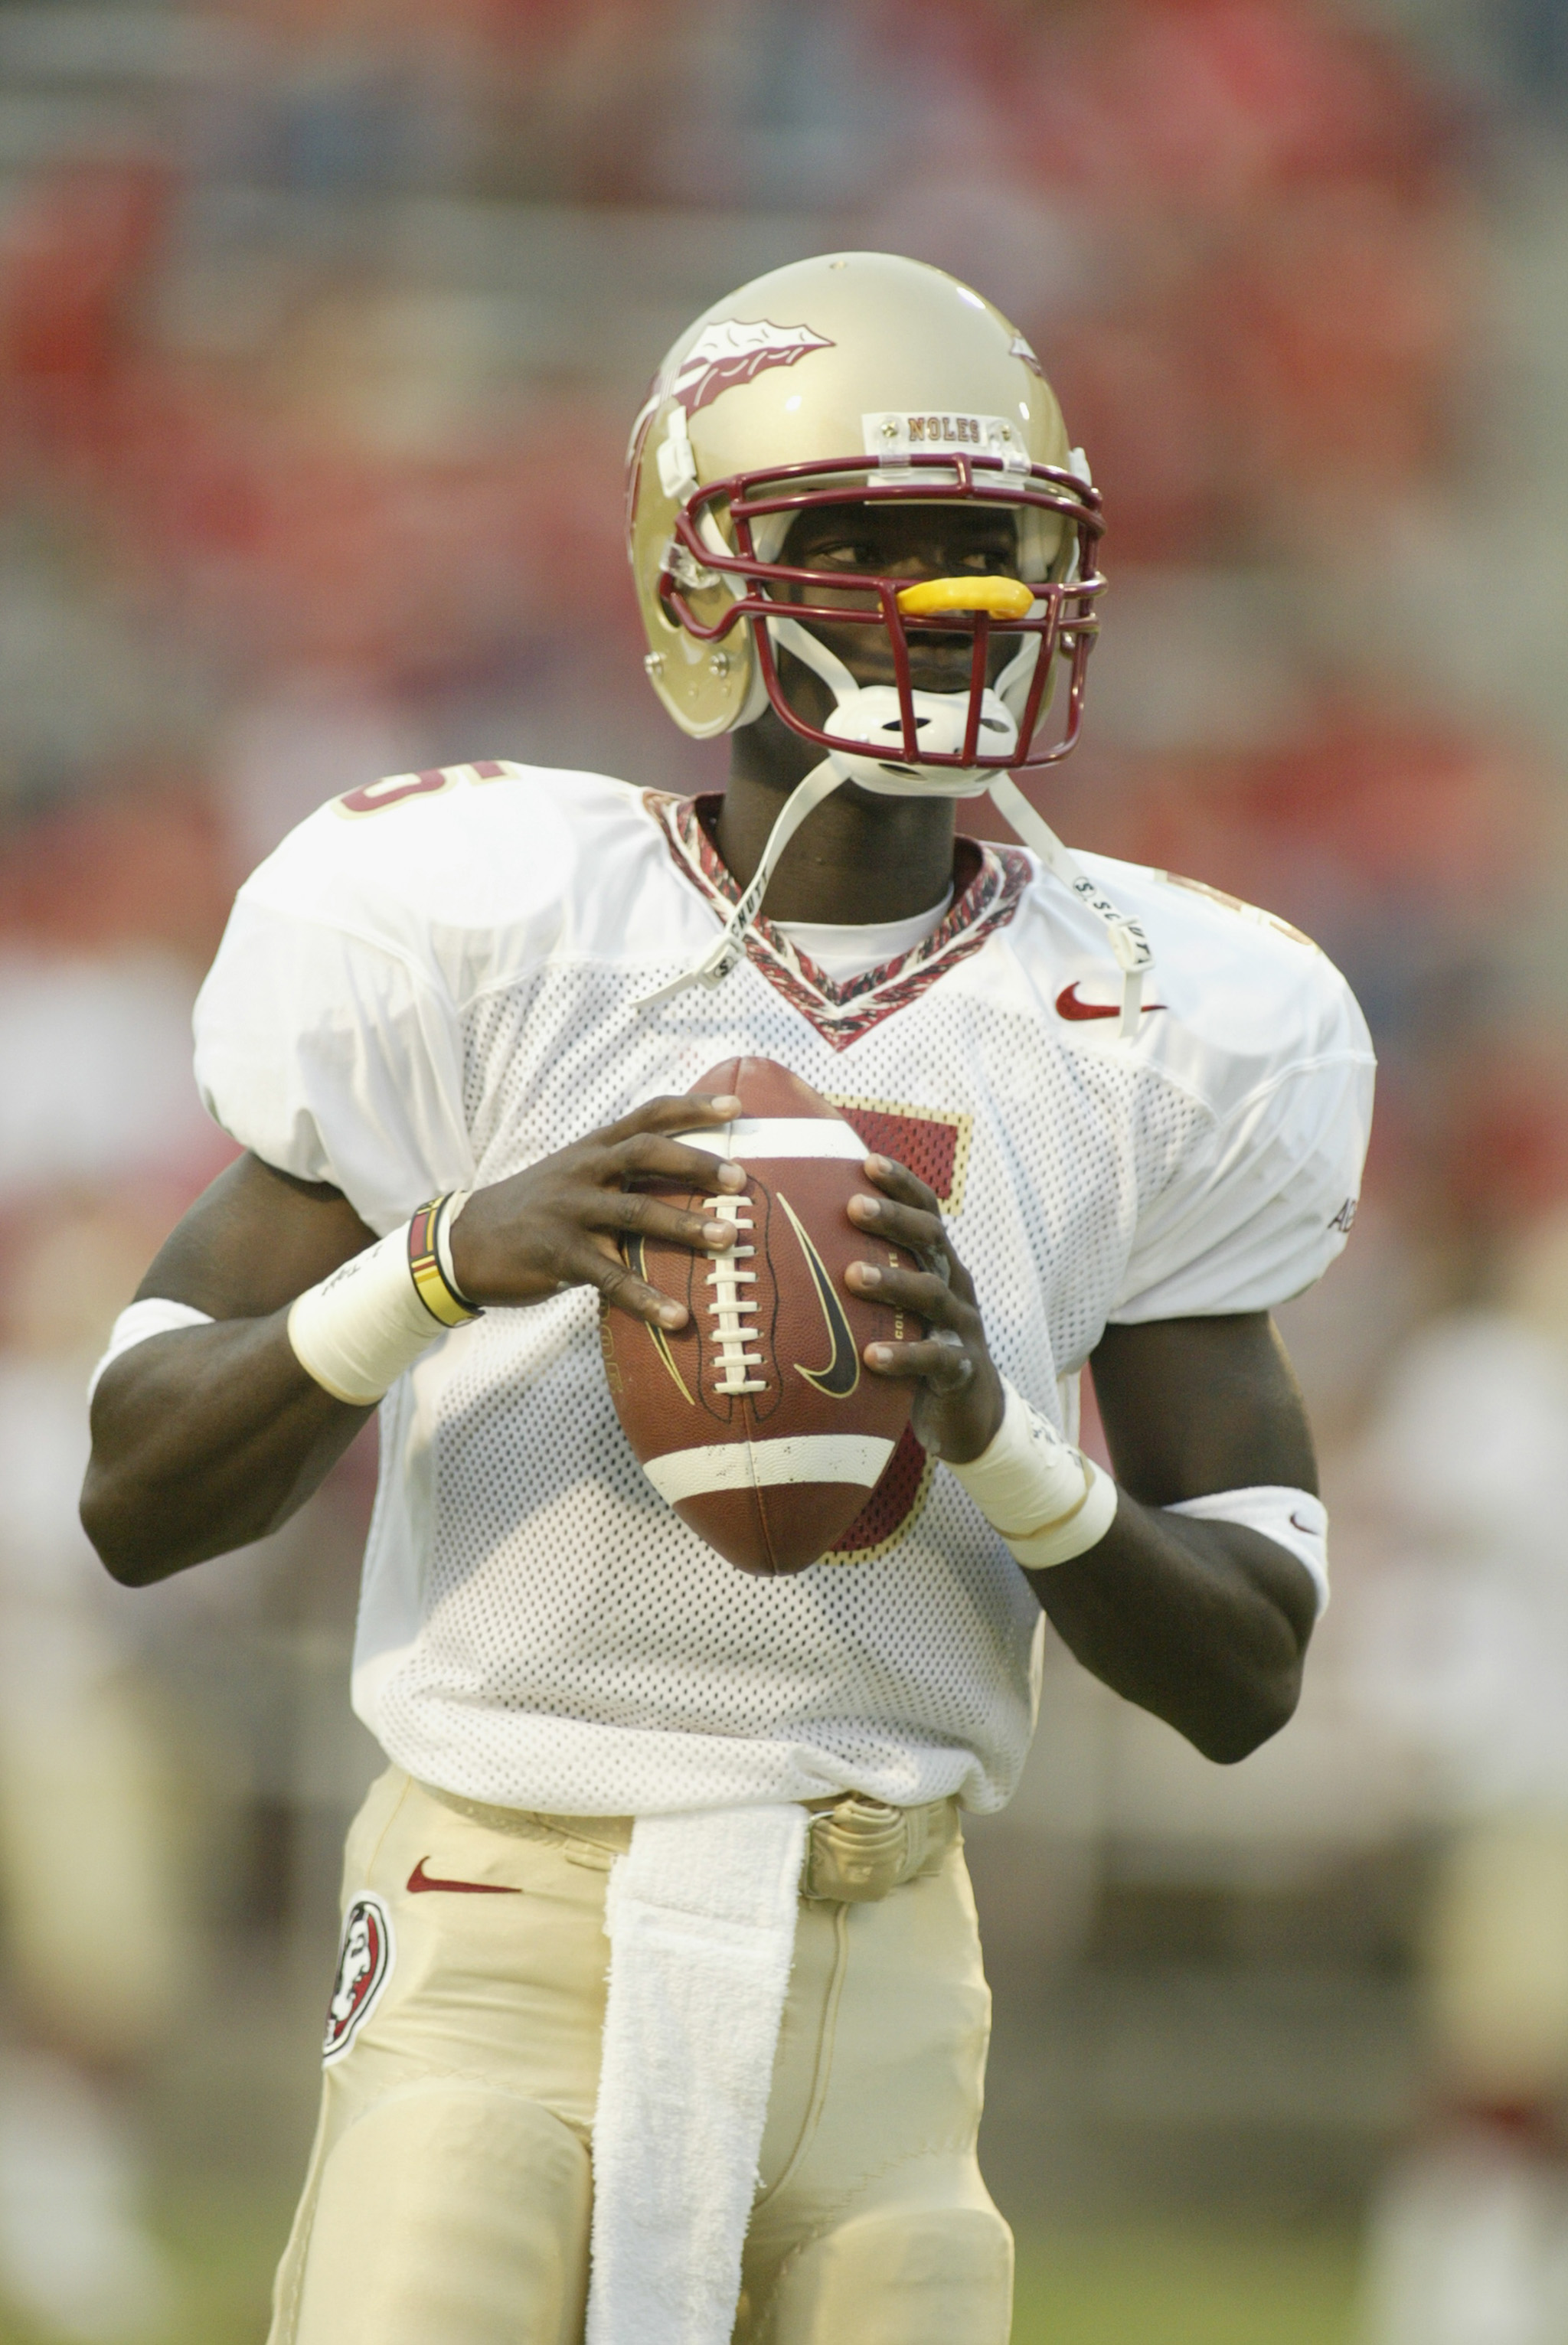 COLLEGE PARK, MARYLAND - SEPTEMBER  14:  Adrian McPherson #5 of the Florida State University Seminoles holds the ball in warmups before the game against the University of Maryland Terrapins on September 14, 2002 at Byrd Stadium in College Park, Maryland.